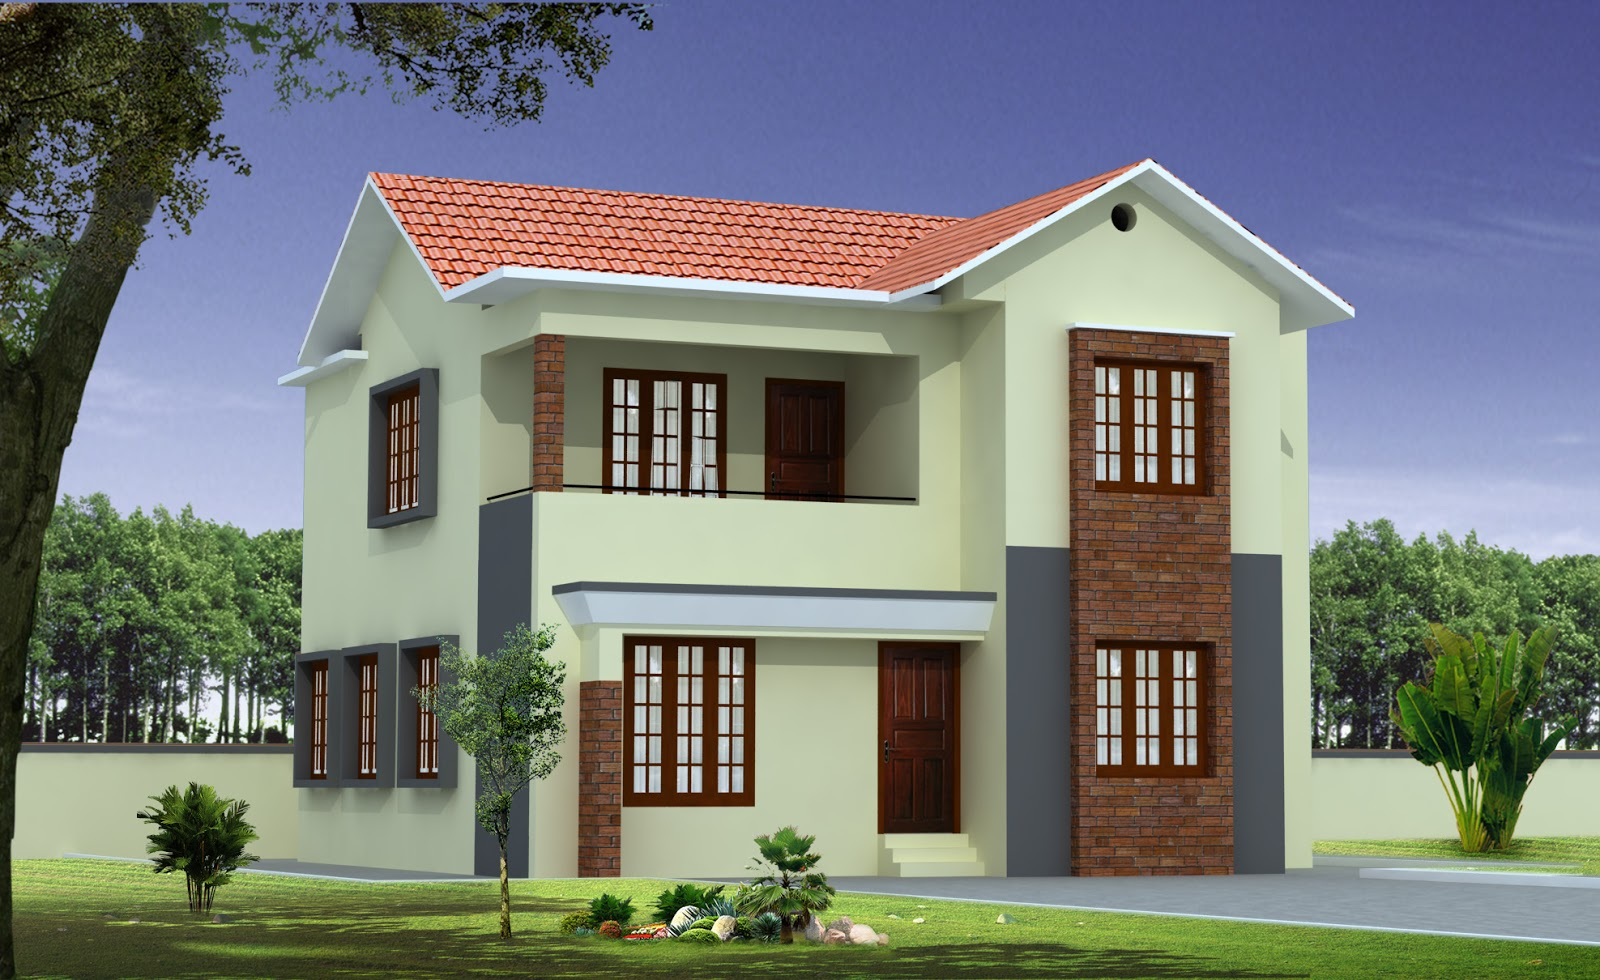 Build a building latest home designs for Home plans designs